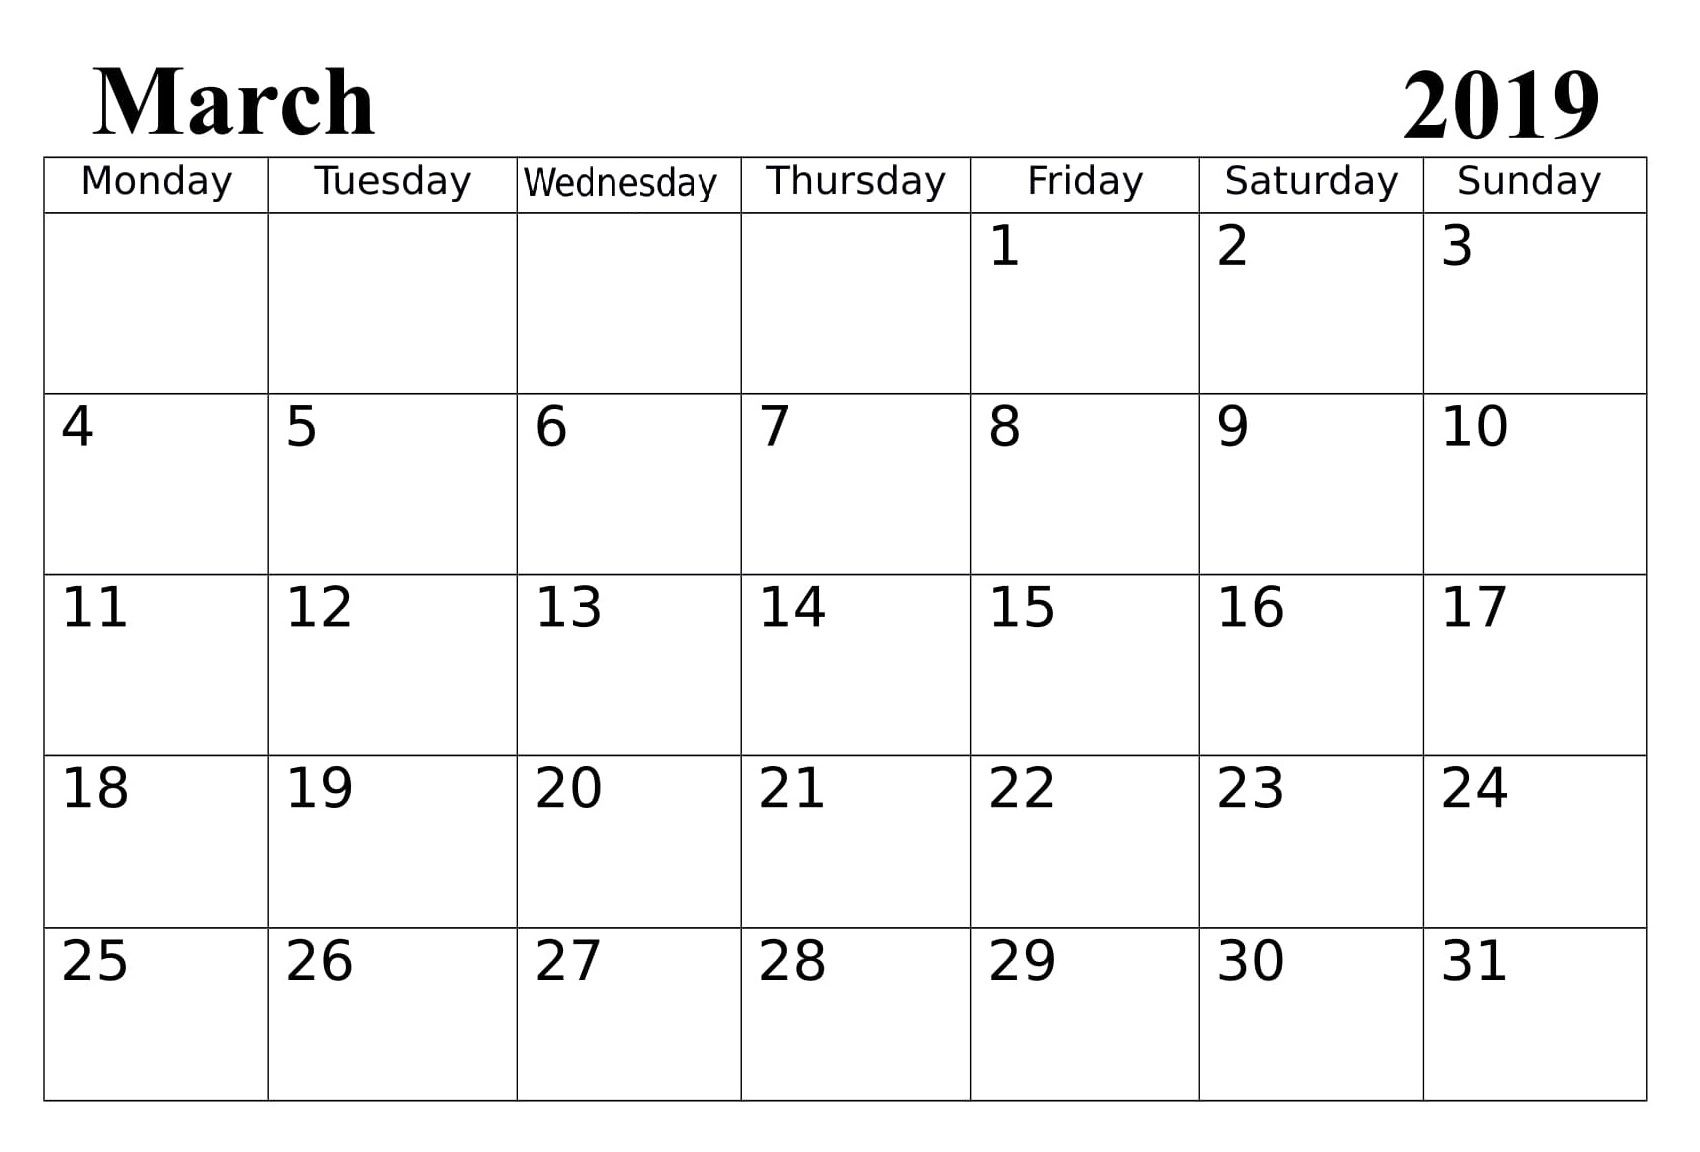 Calendar March 2019 Calendar With Holidays And Events 2019